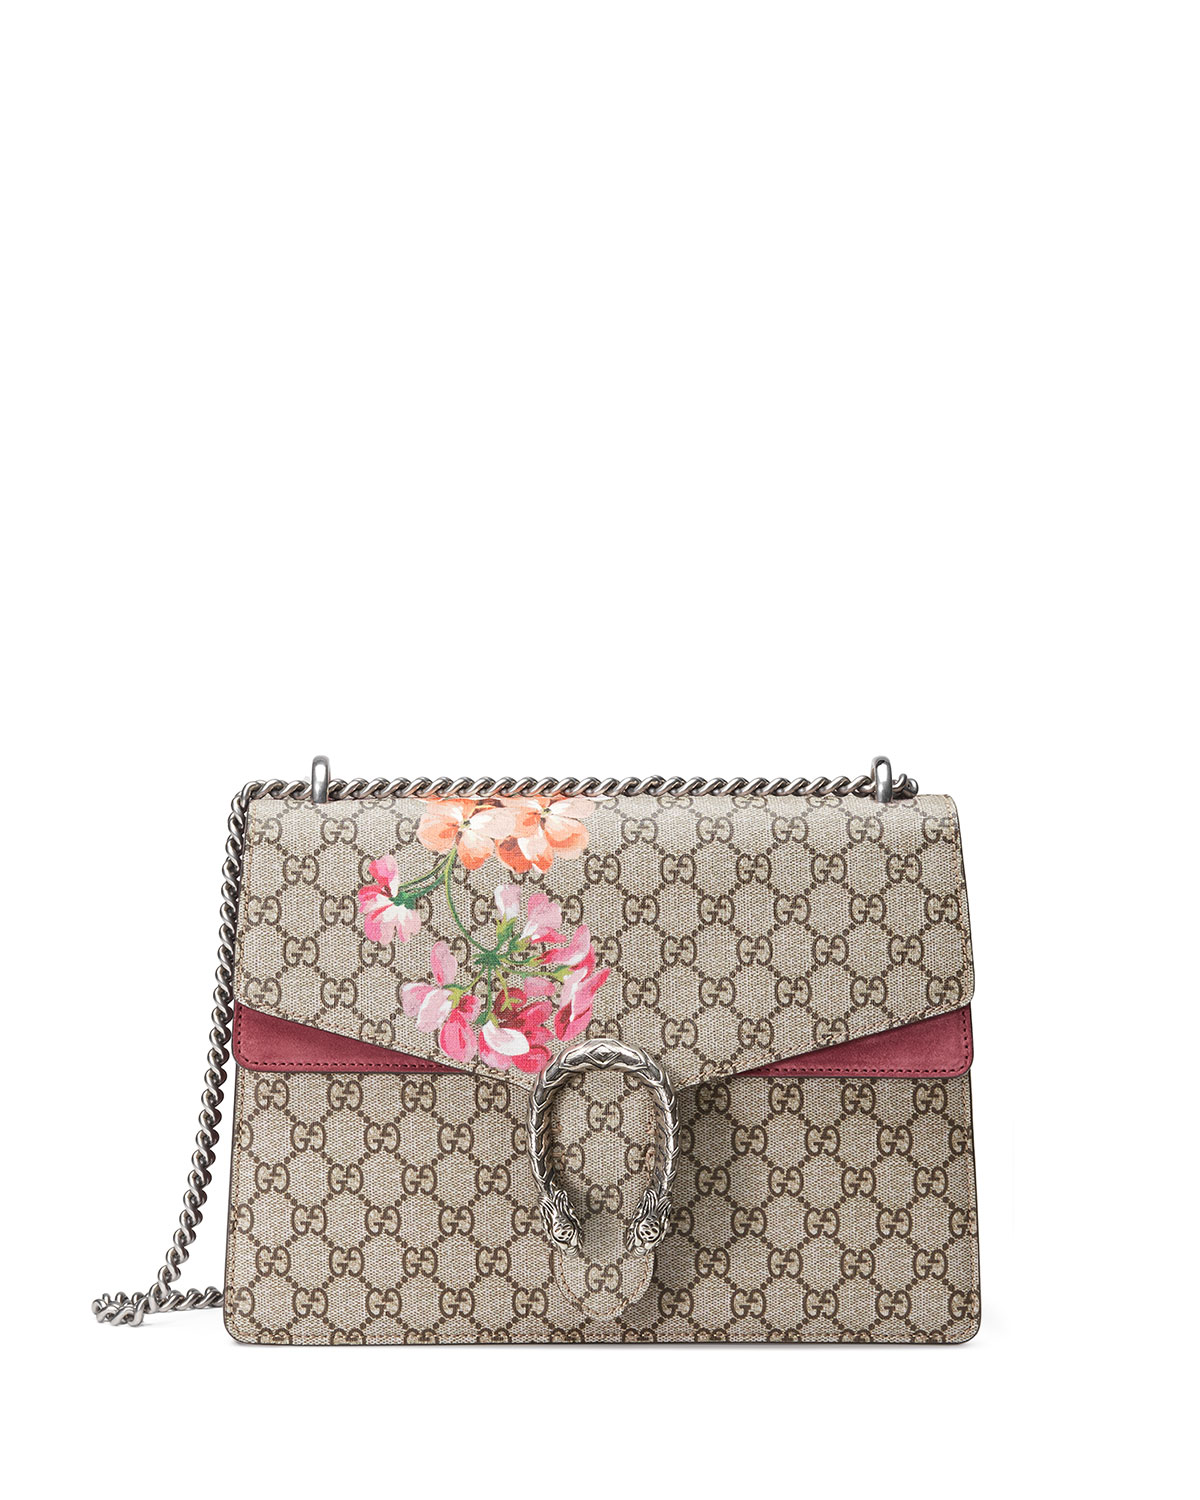 74160ead6 Gucci Dionysus GG Blooms Medium Shoulder Bag, Pink/Multi | Neiman Marcus